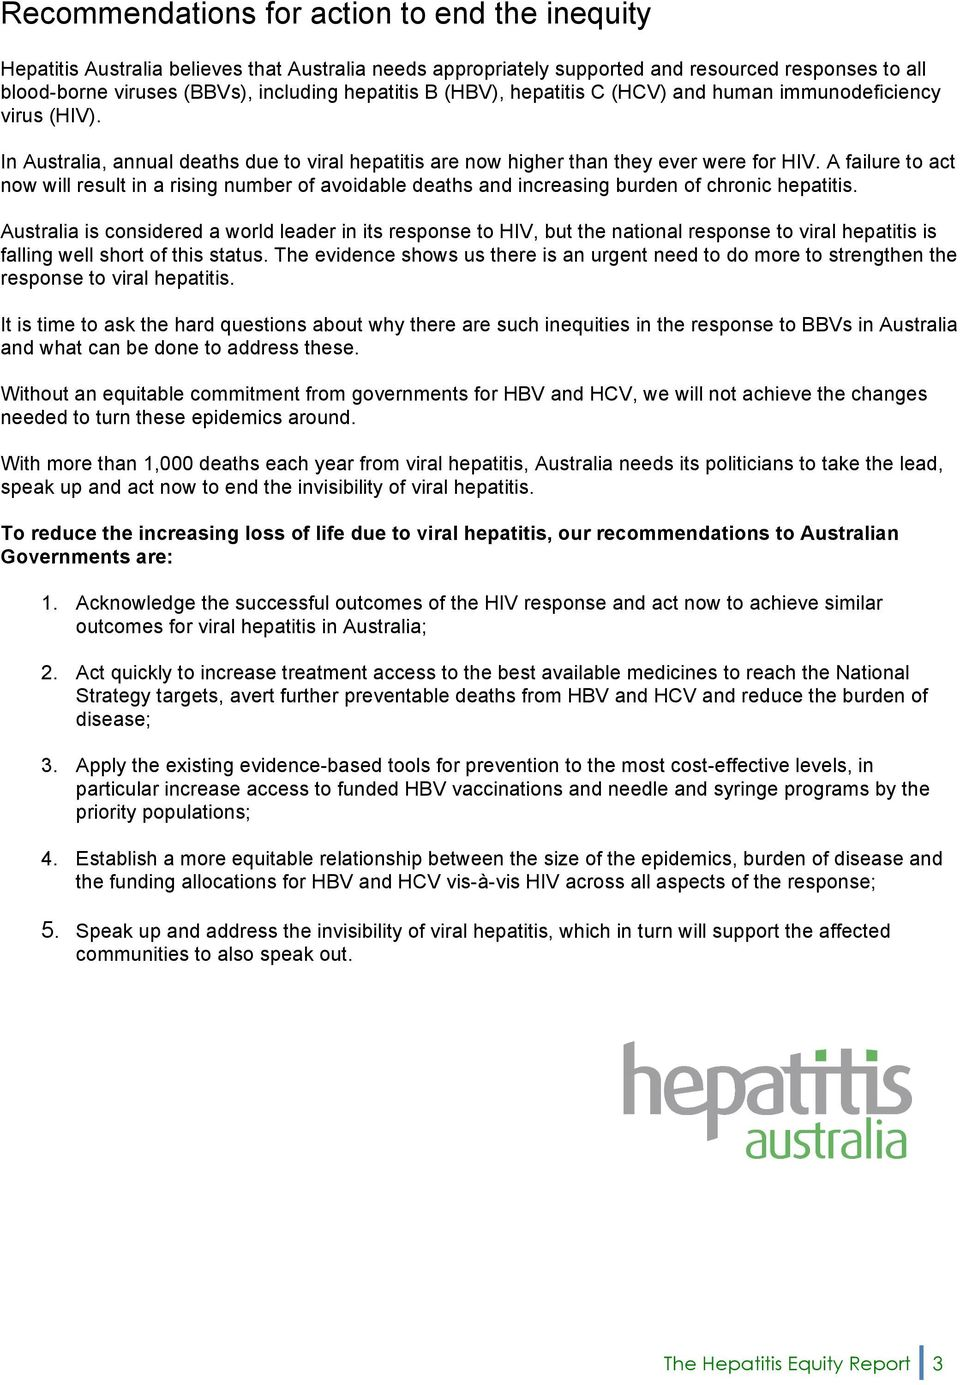 A failure to act now will result in a rising number of avoidable deaths and increasing burden of chronic hepatitis.